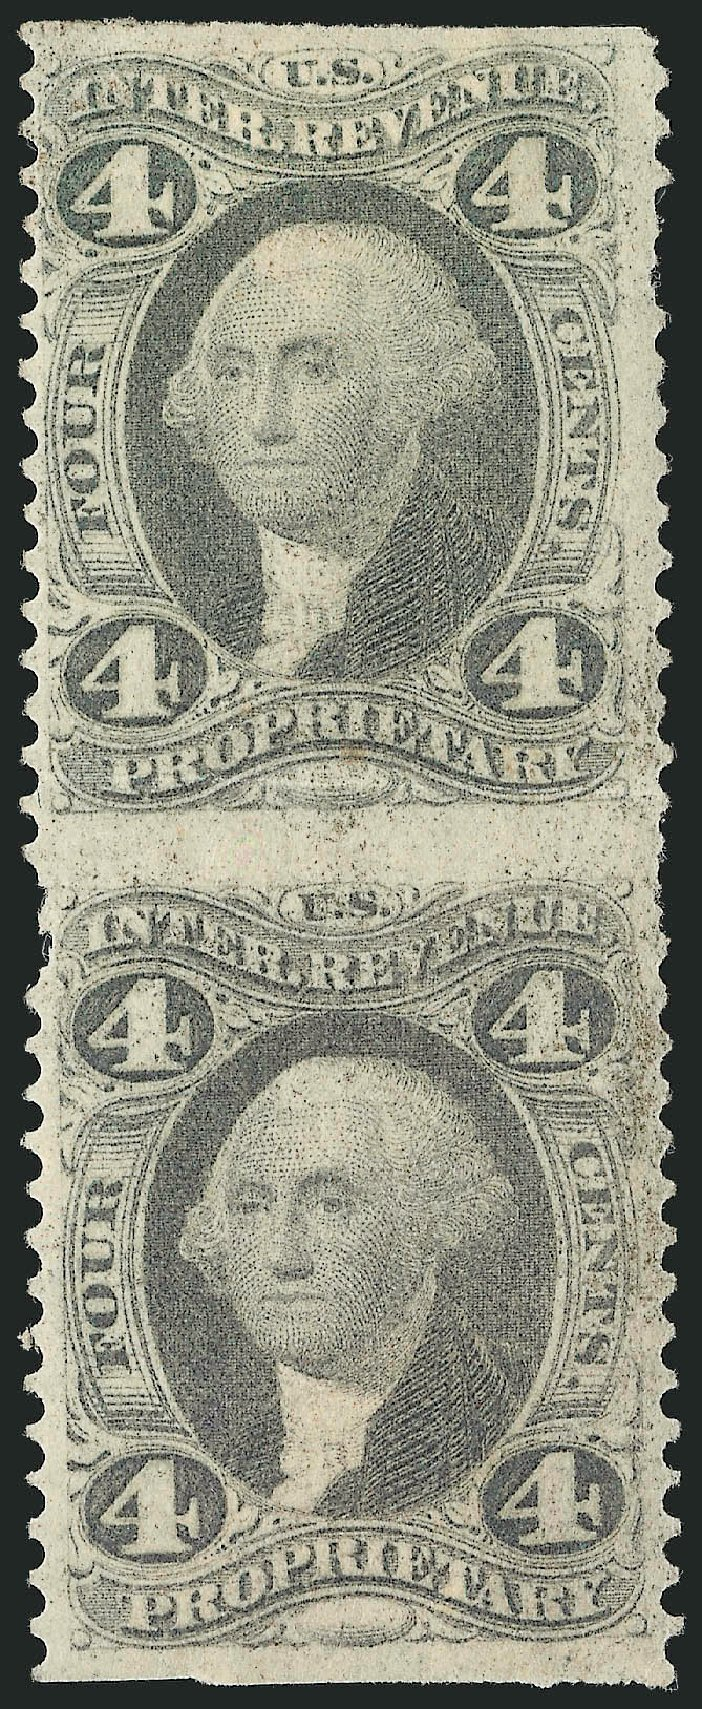 Prices of US Stamp Scott R22 - 1862 4c Revenue Proprietary. Robert Siegel Auction Galleries, Jun 2015, Sale 1100, Lot 144